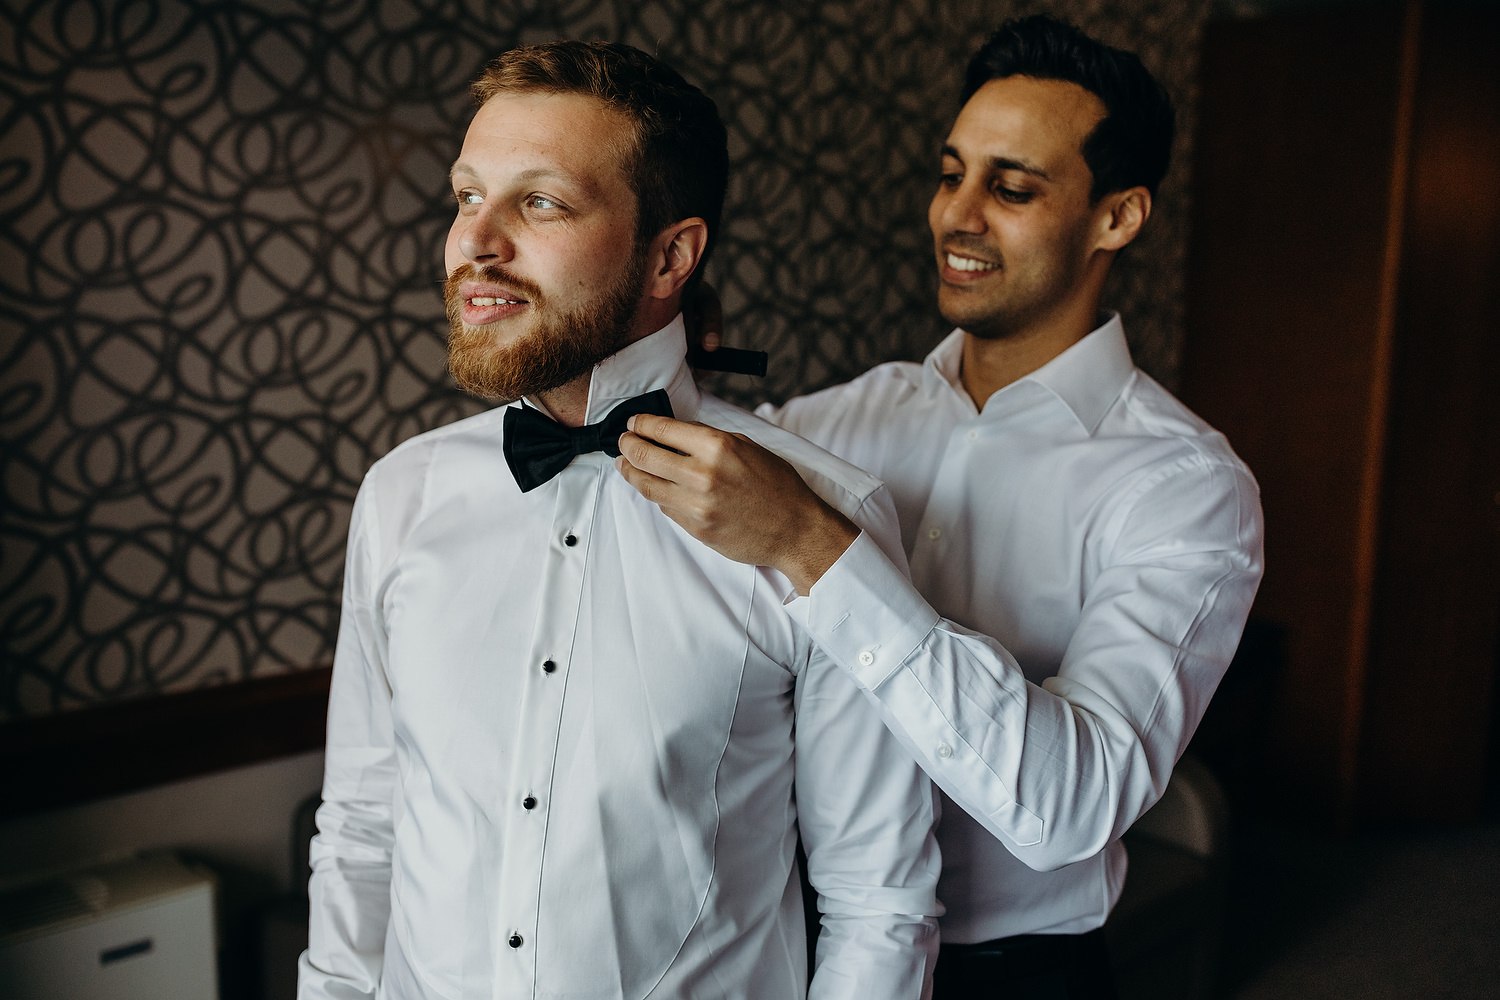 groom getting bow tie on